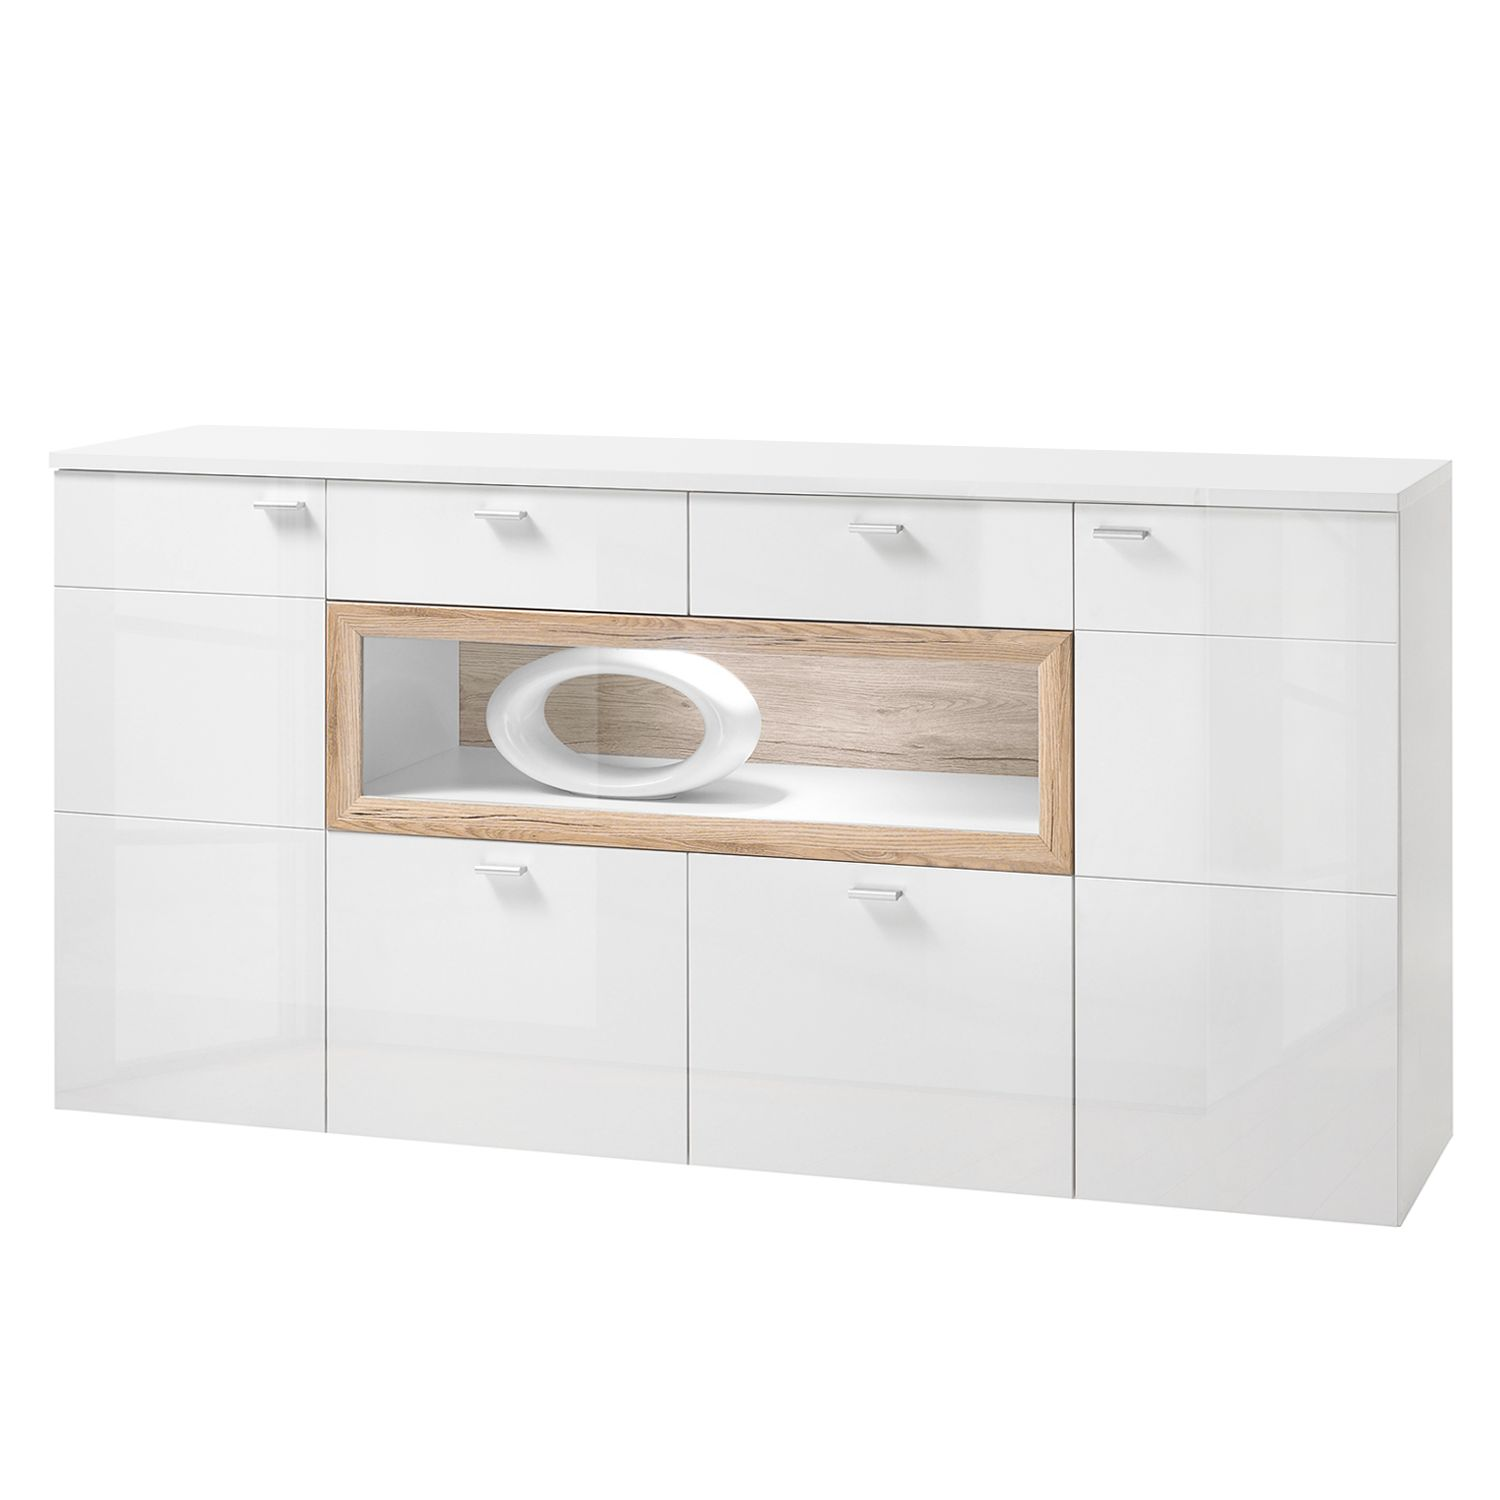 Sideboard CORNHILL (inkl. Beleuchtung) von MOOVED